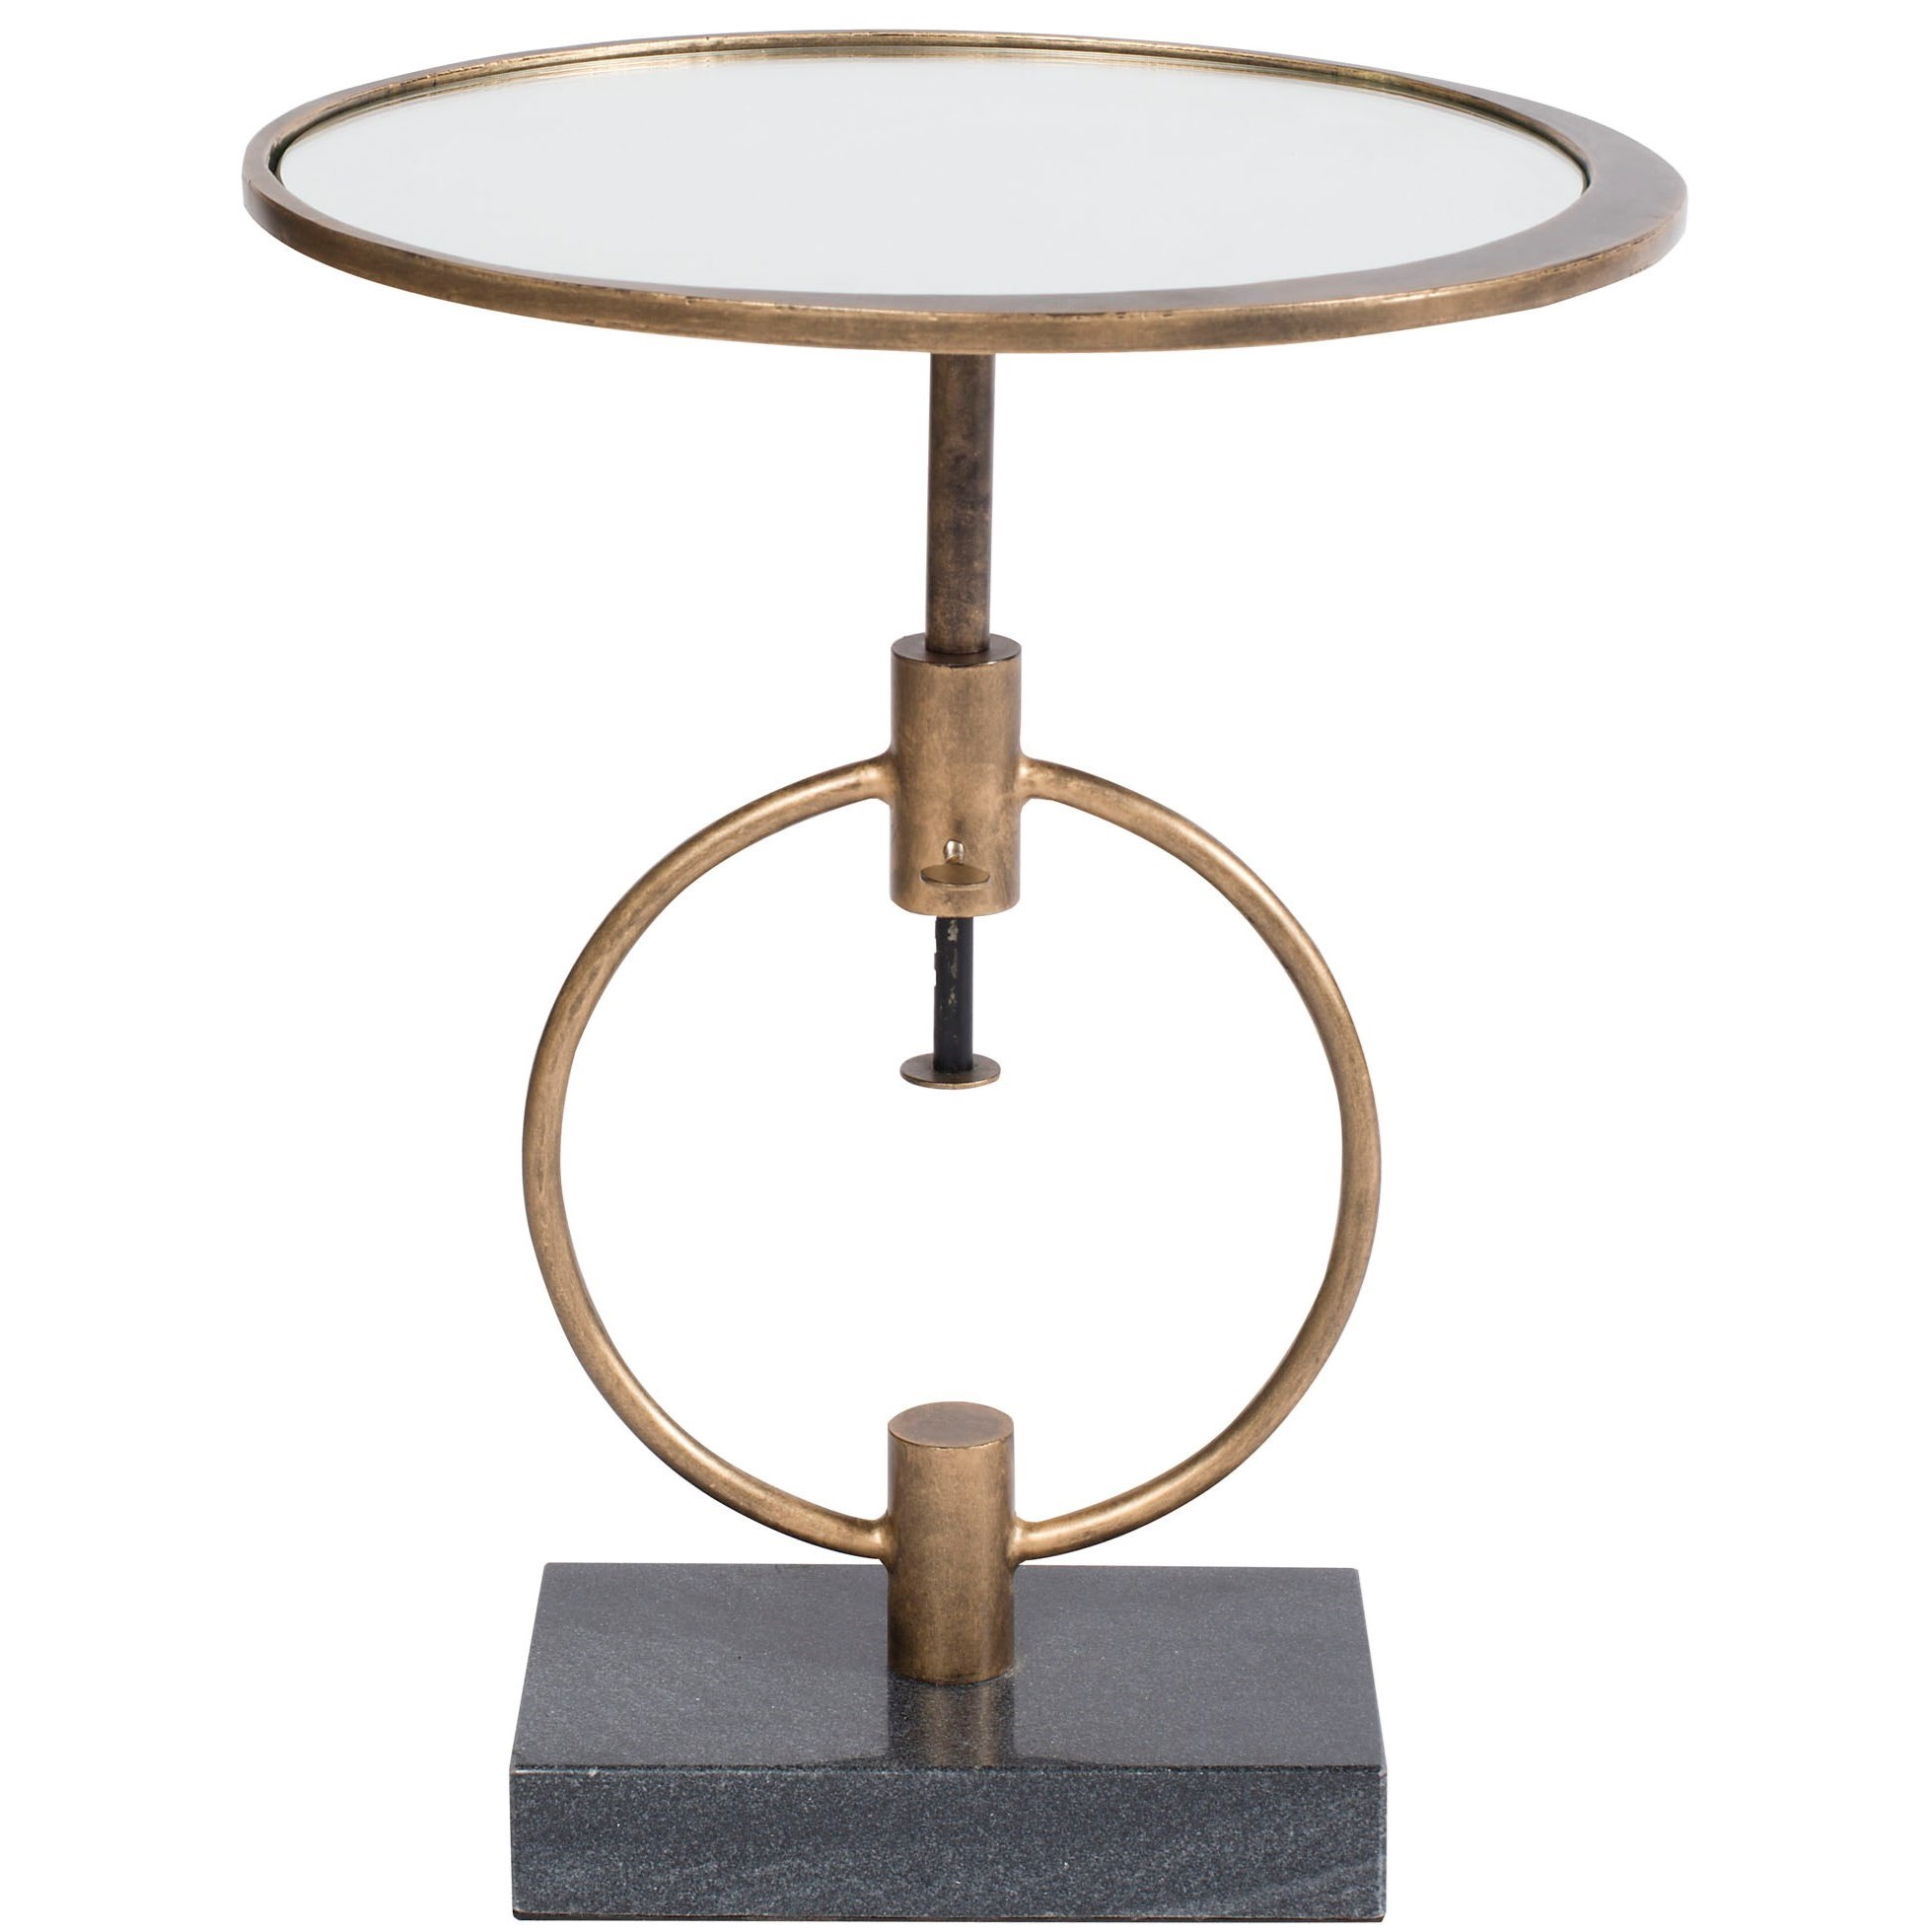 Barry Goralnick Montgomery Martini Table by Vanguard Furniture at Baer's Furniture